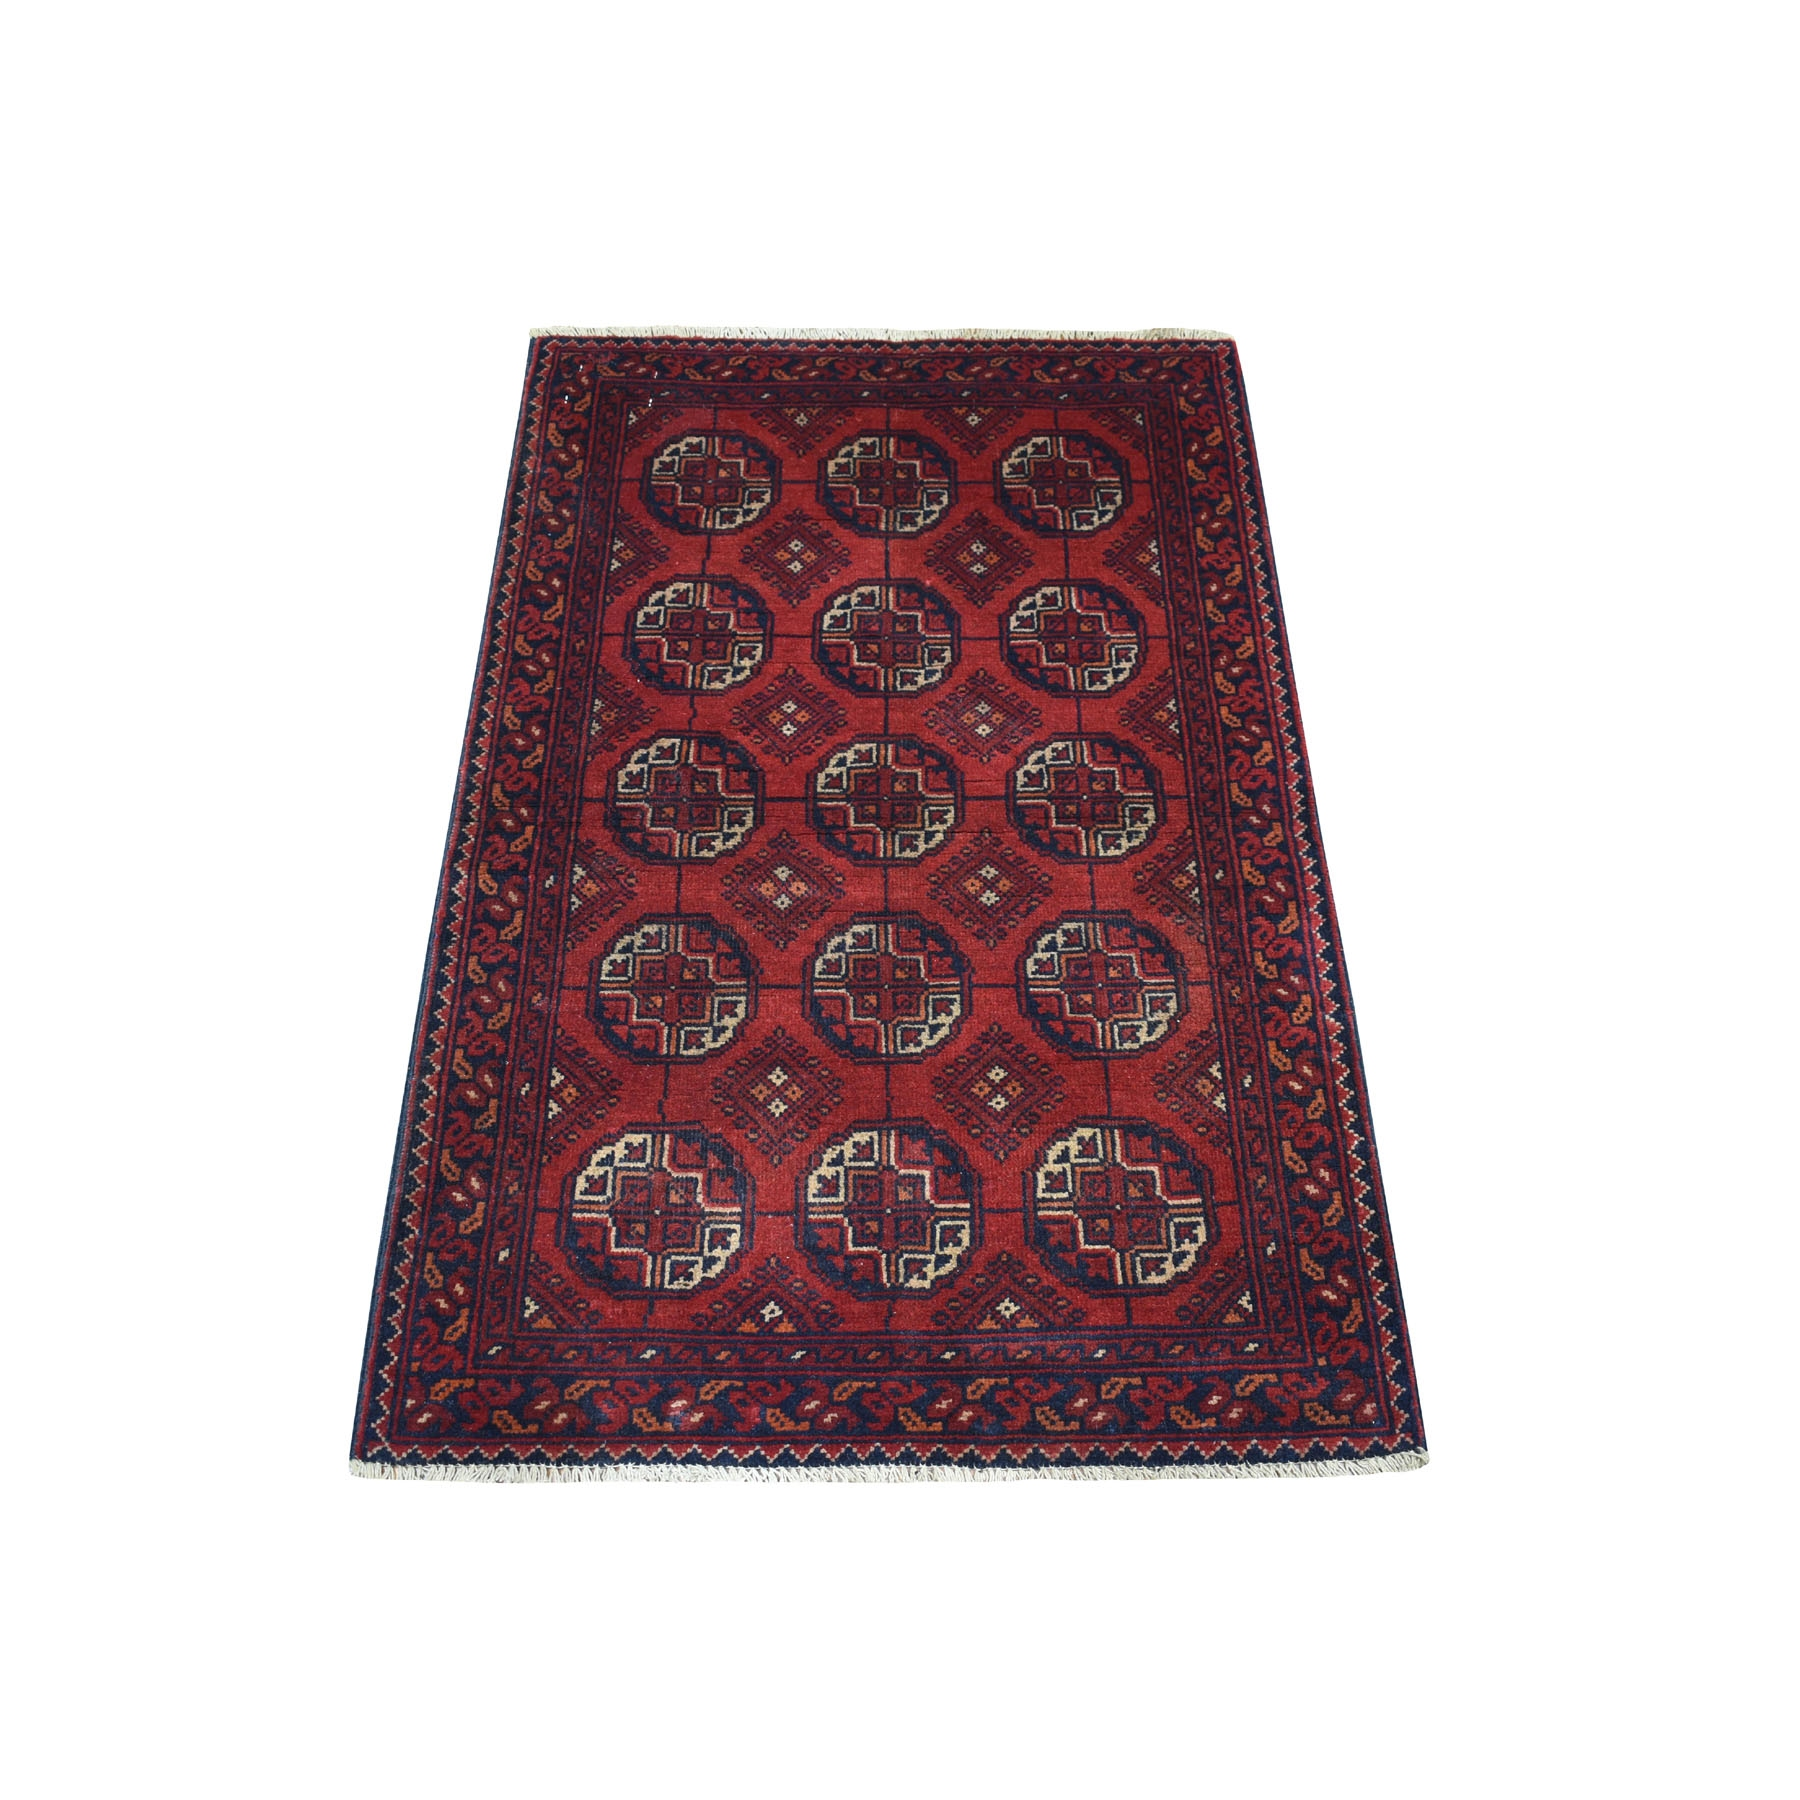 "2'6""X4' Deep And Saturated Red Elephant Feet Afghan Andkhoy Pure Wool Hand Knotted Oriental Rug moaece68"